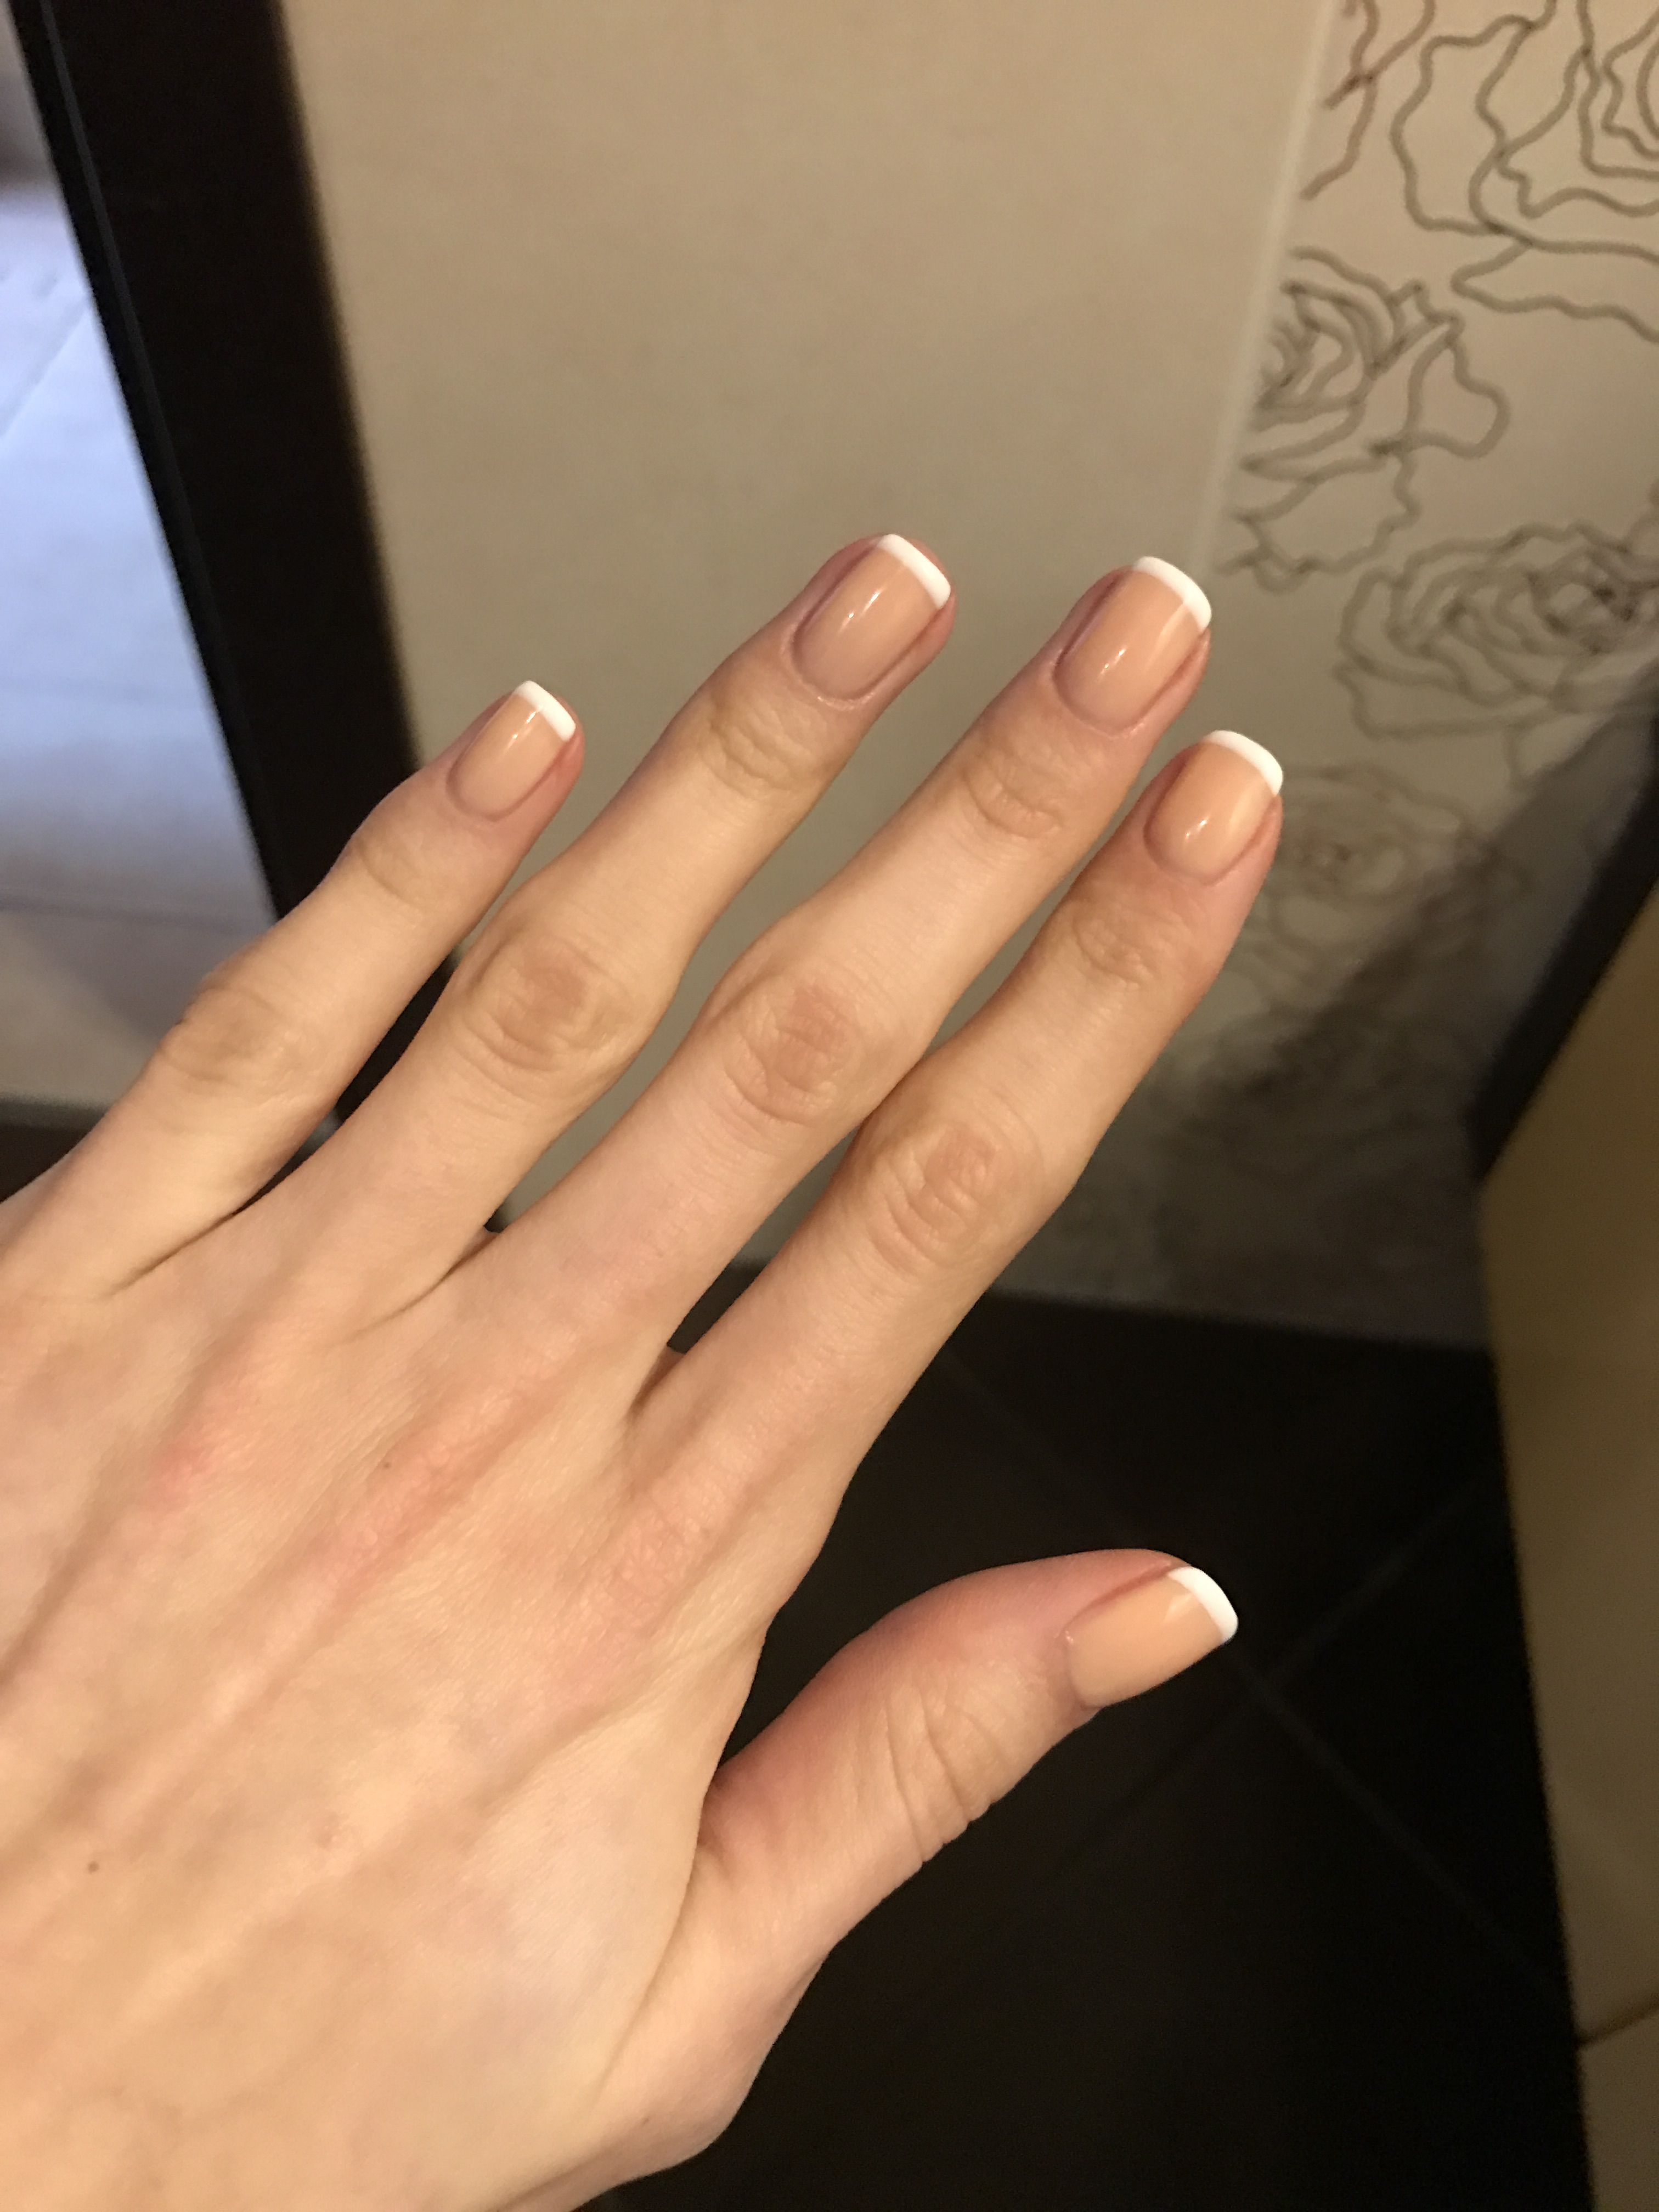 Opi White Gel Nail Polish: French Opi Nails Snow White And Samoan Sand Gel Polish